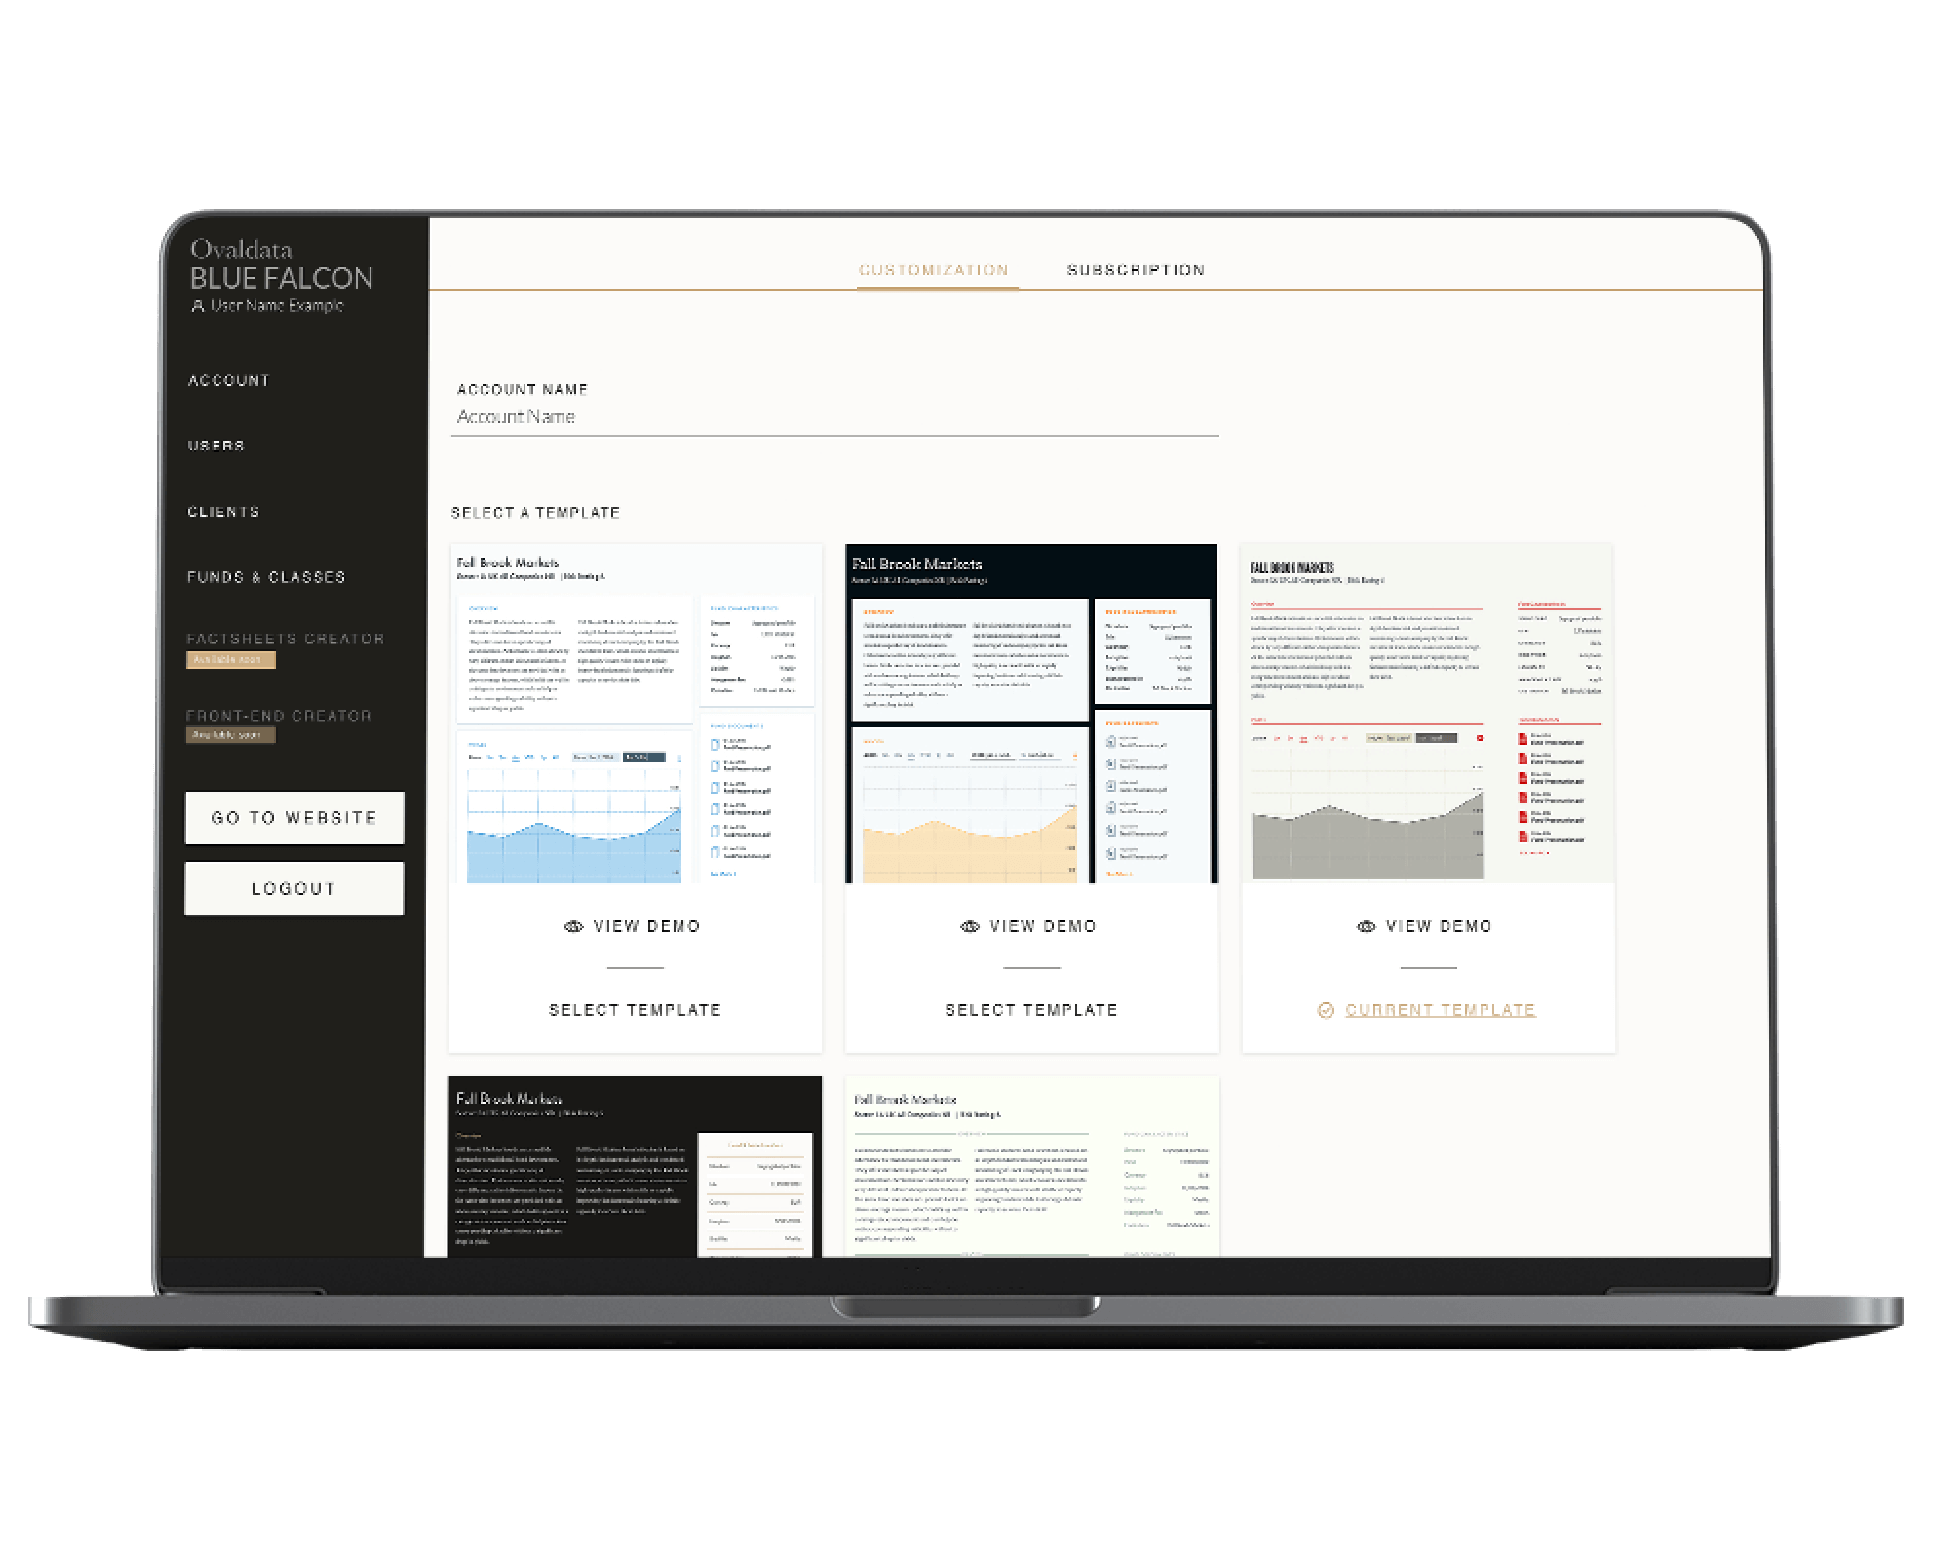 Imaginary Cloud UX/UI design and software development project for OvalData.